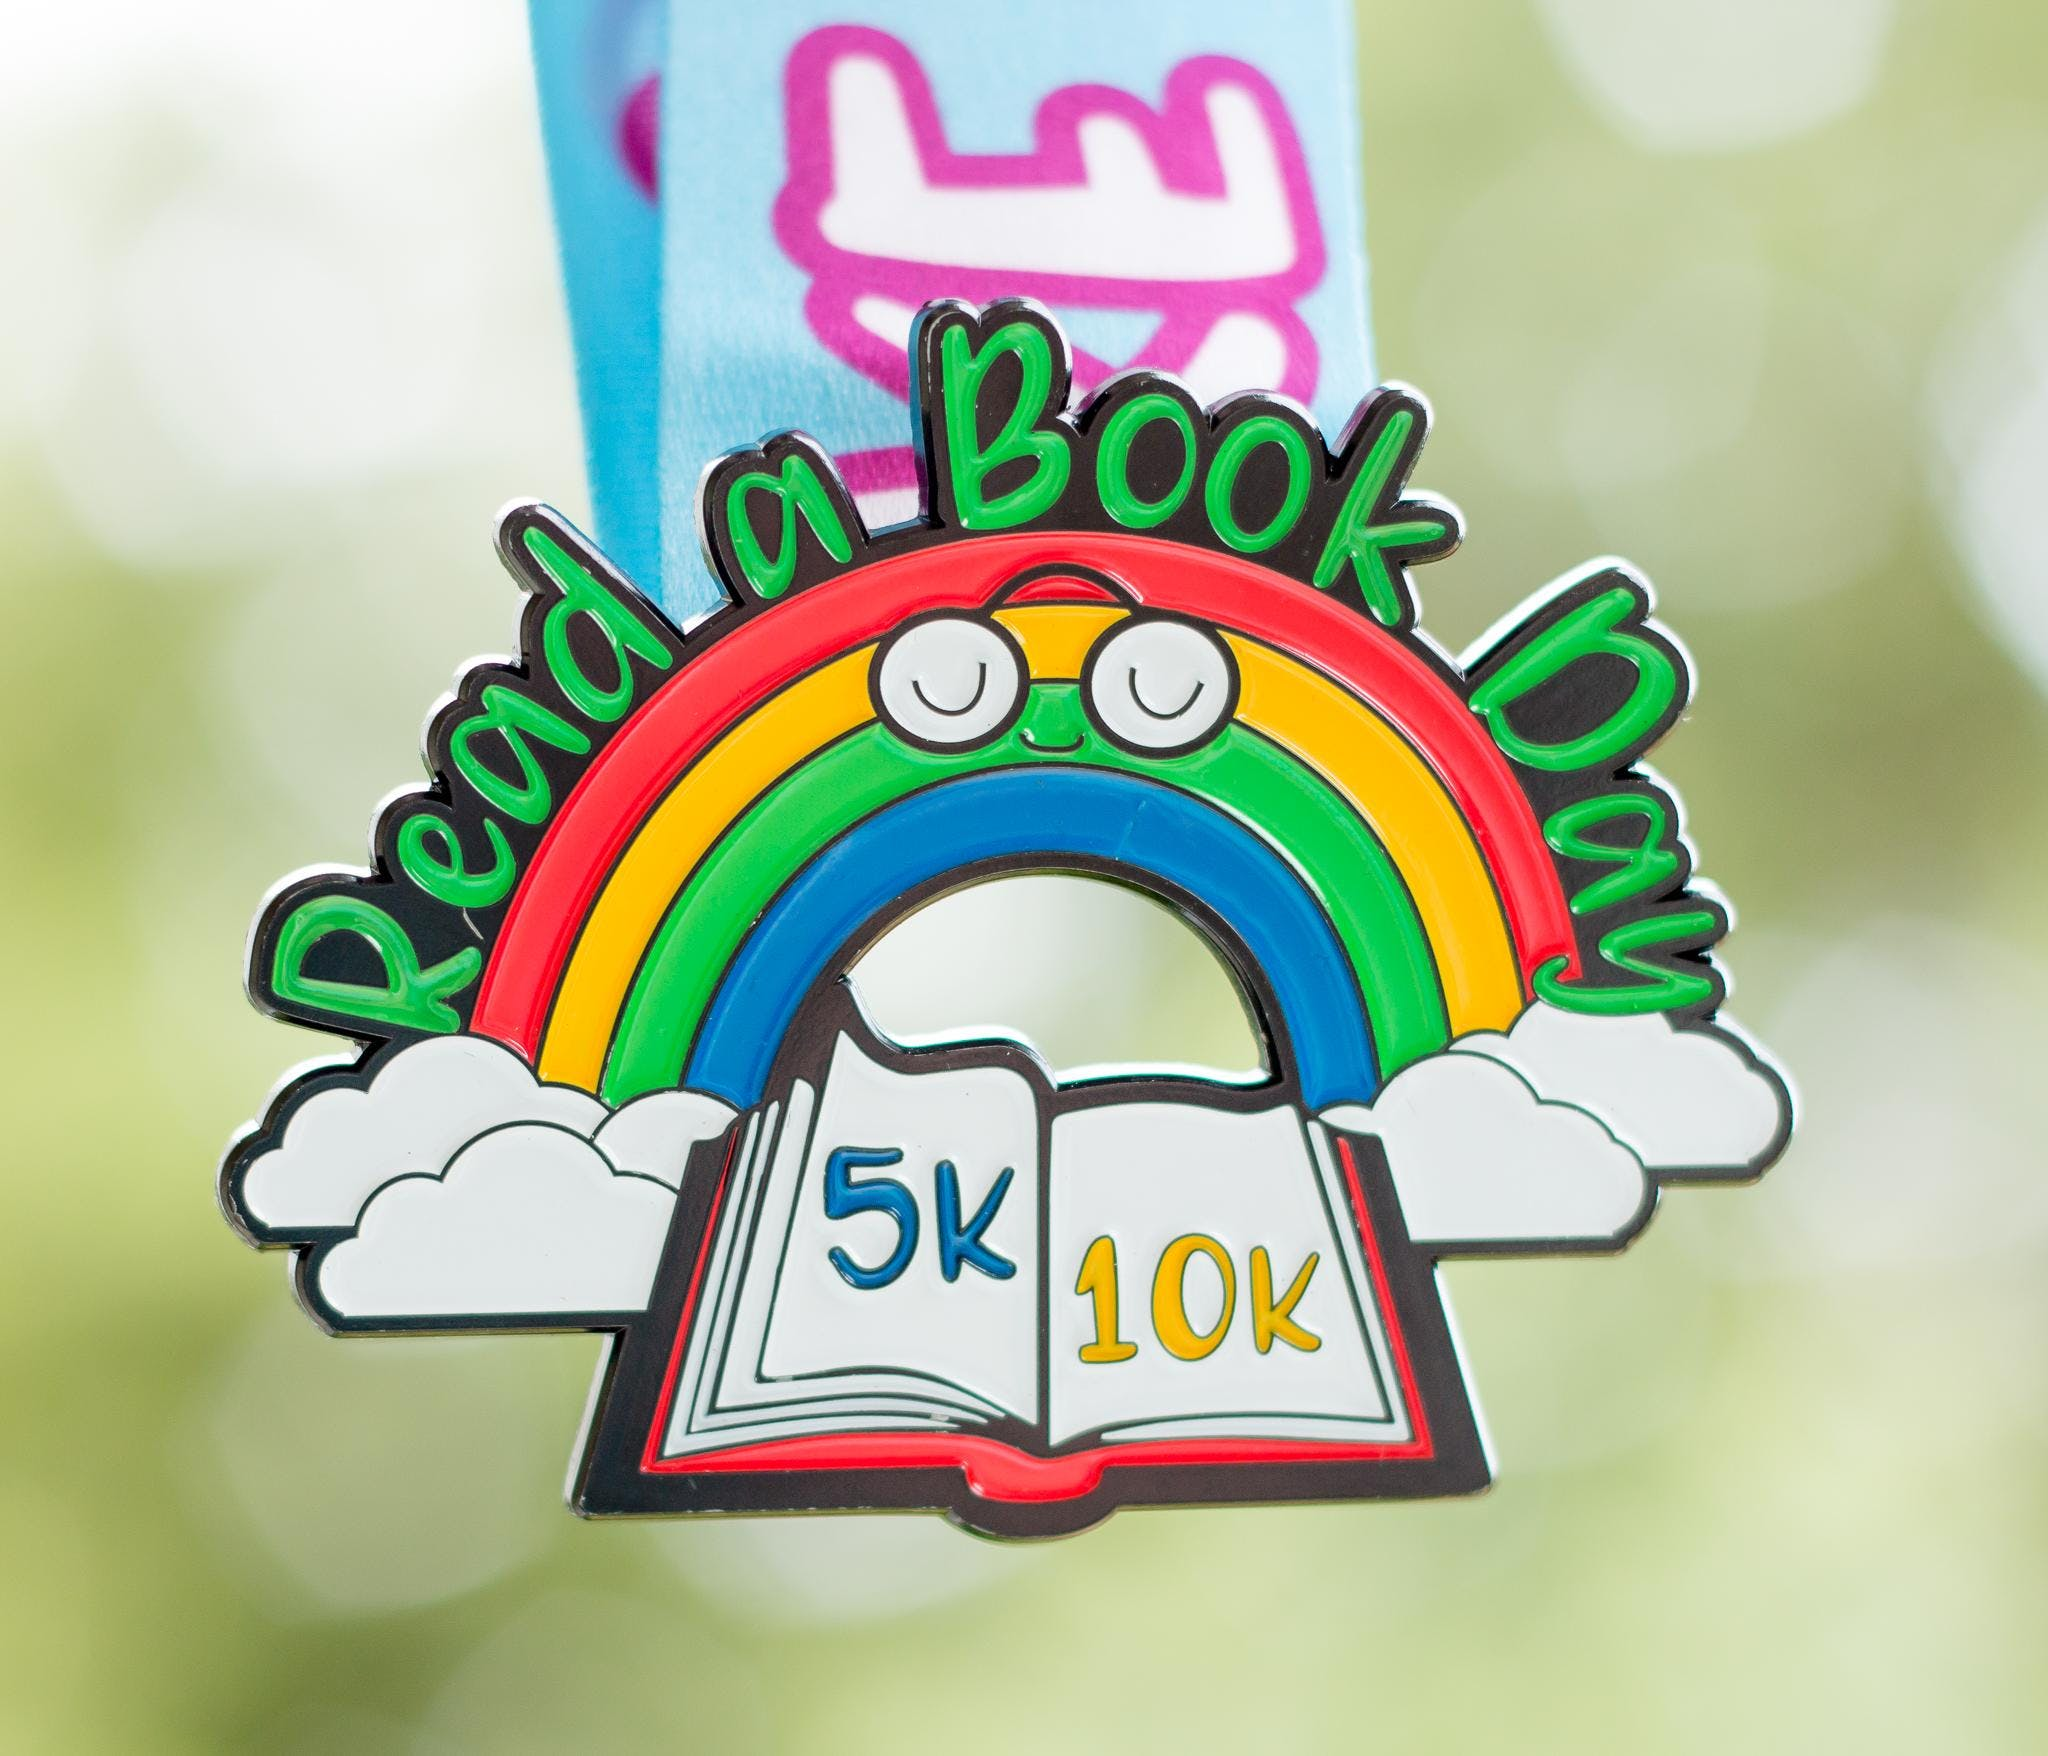 Now Only $10! Read a Book Day 5K & 10K - Take a Look, It's in a Book - Glendale